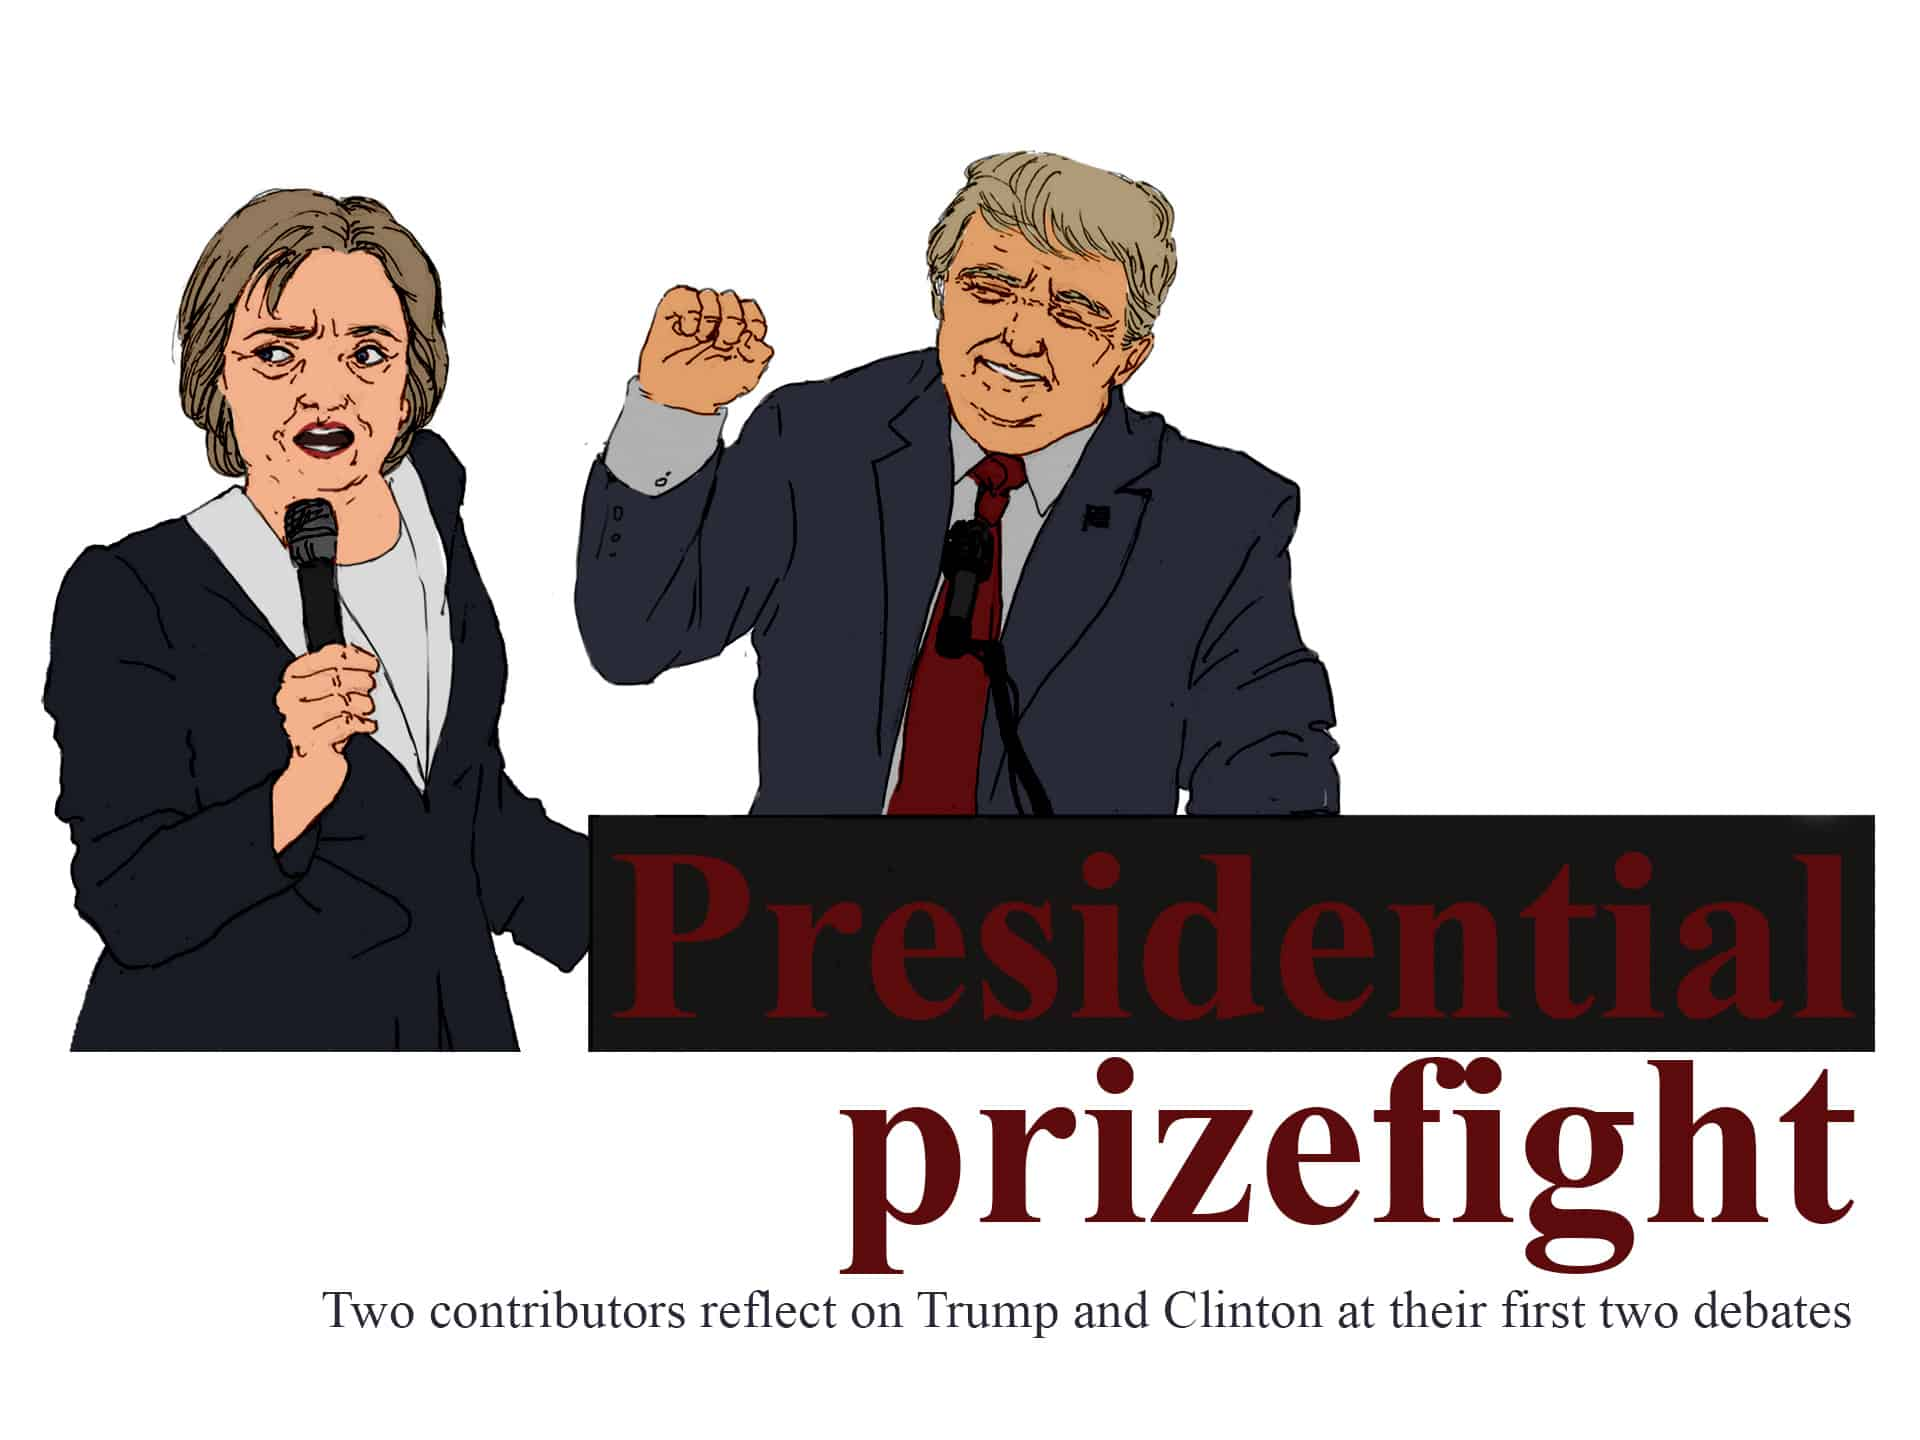 Presidential prizefight